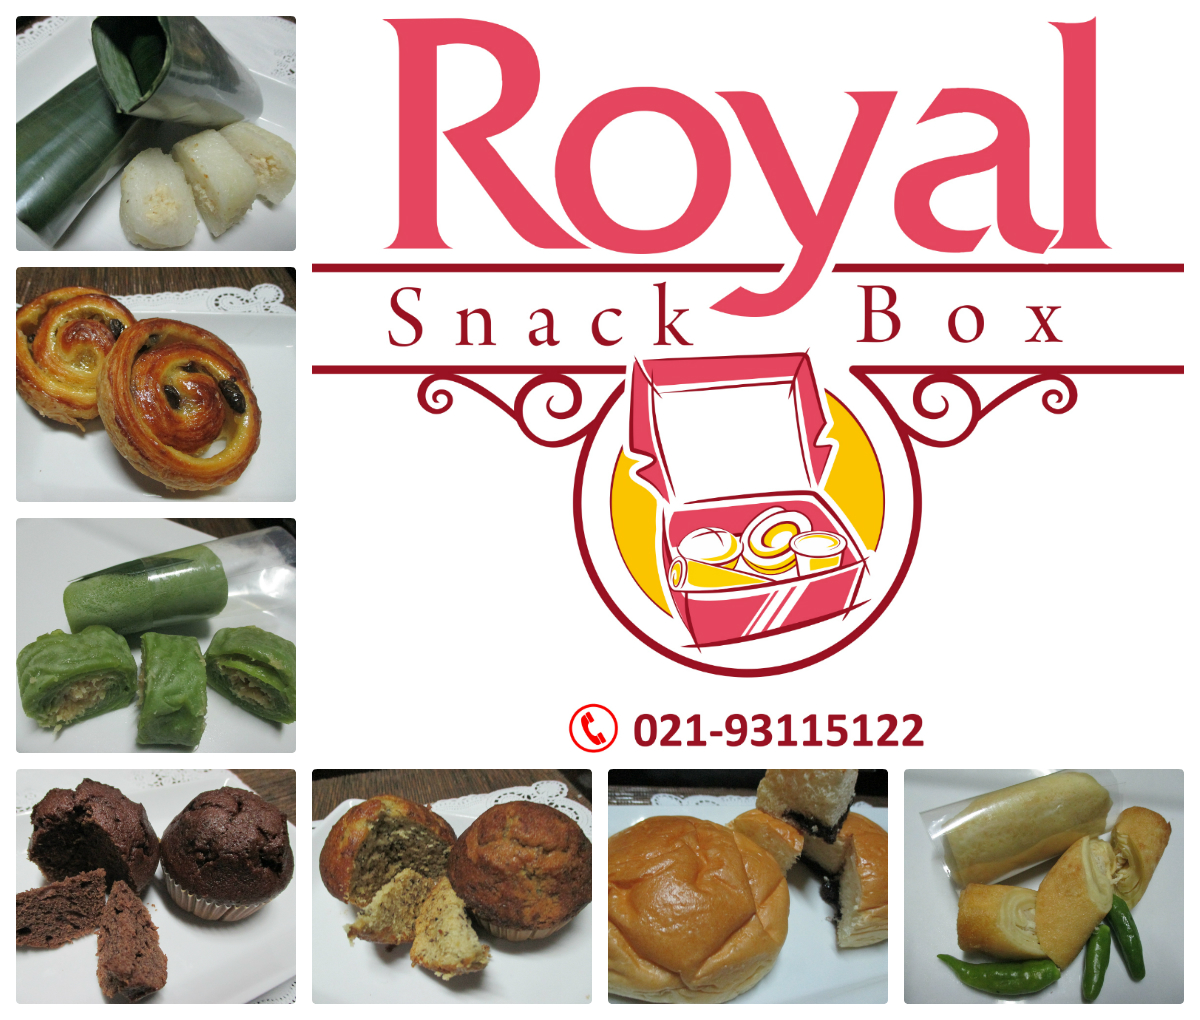 Snack Box Delivery